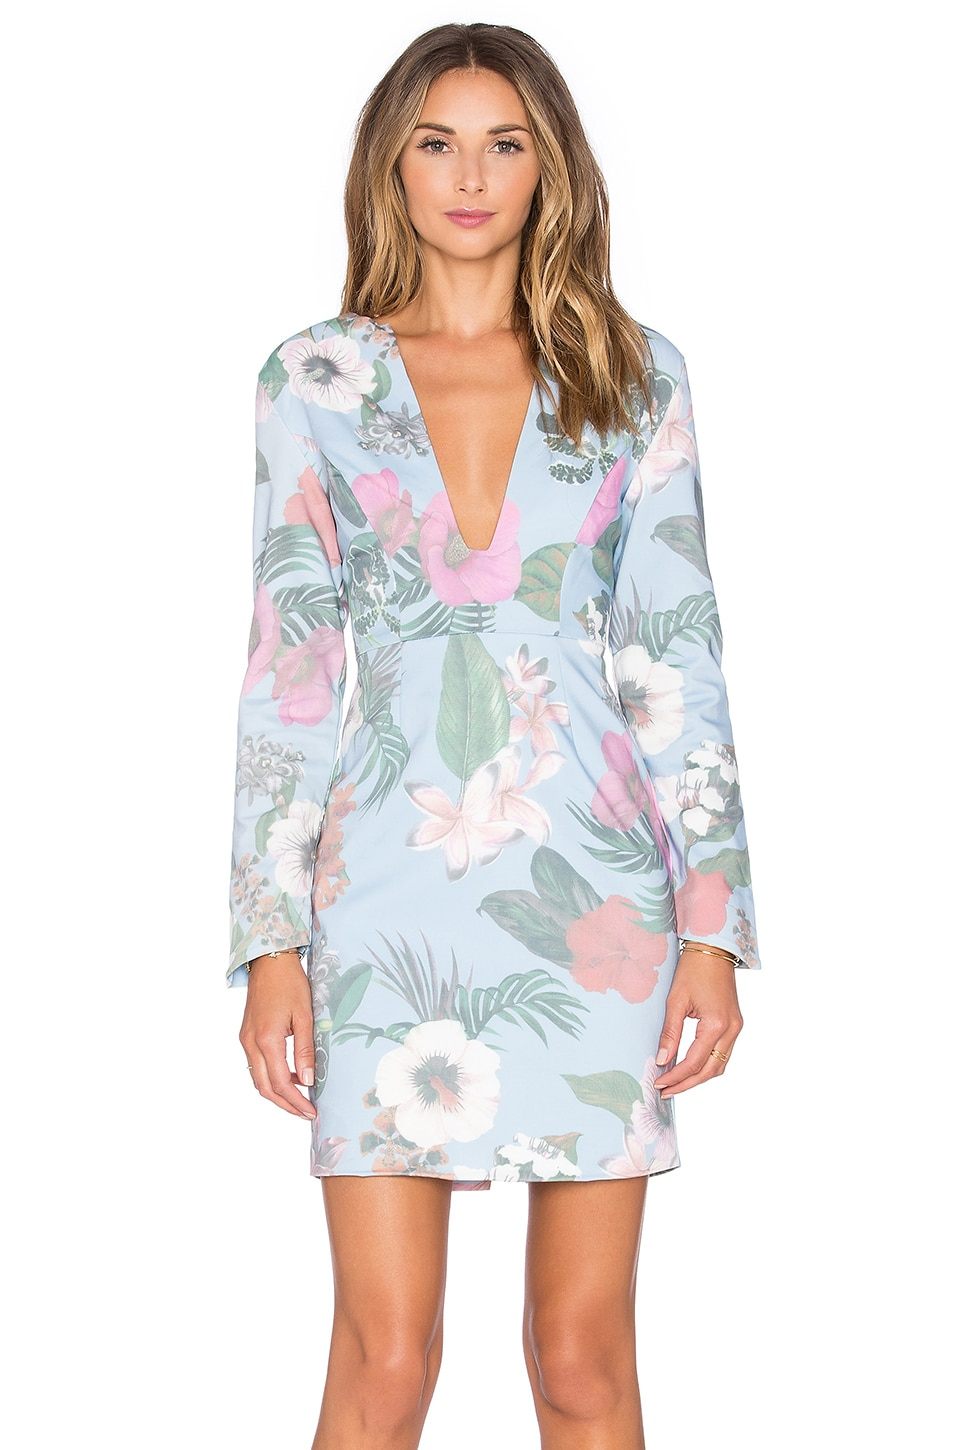 ISLA_CO West Coast Long Sleeve Dress in Multi